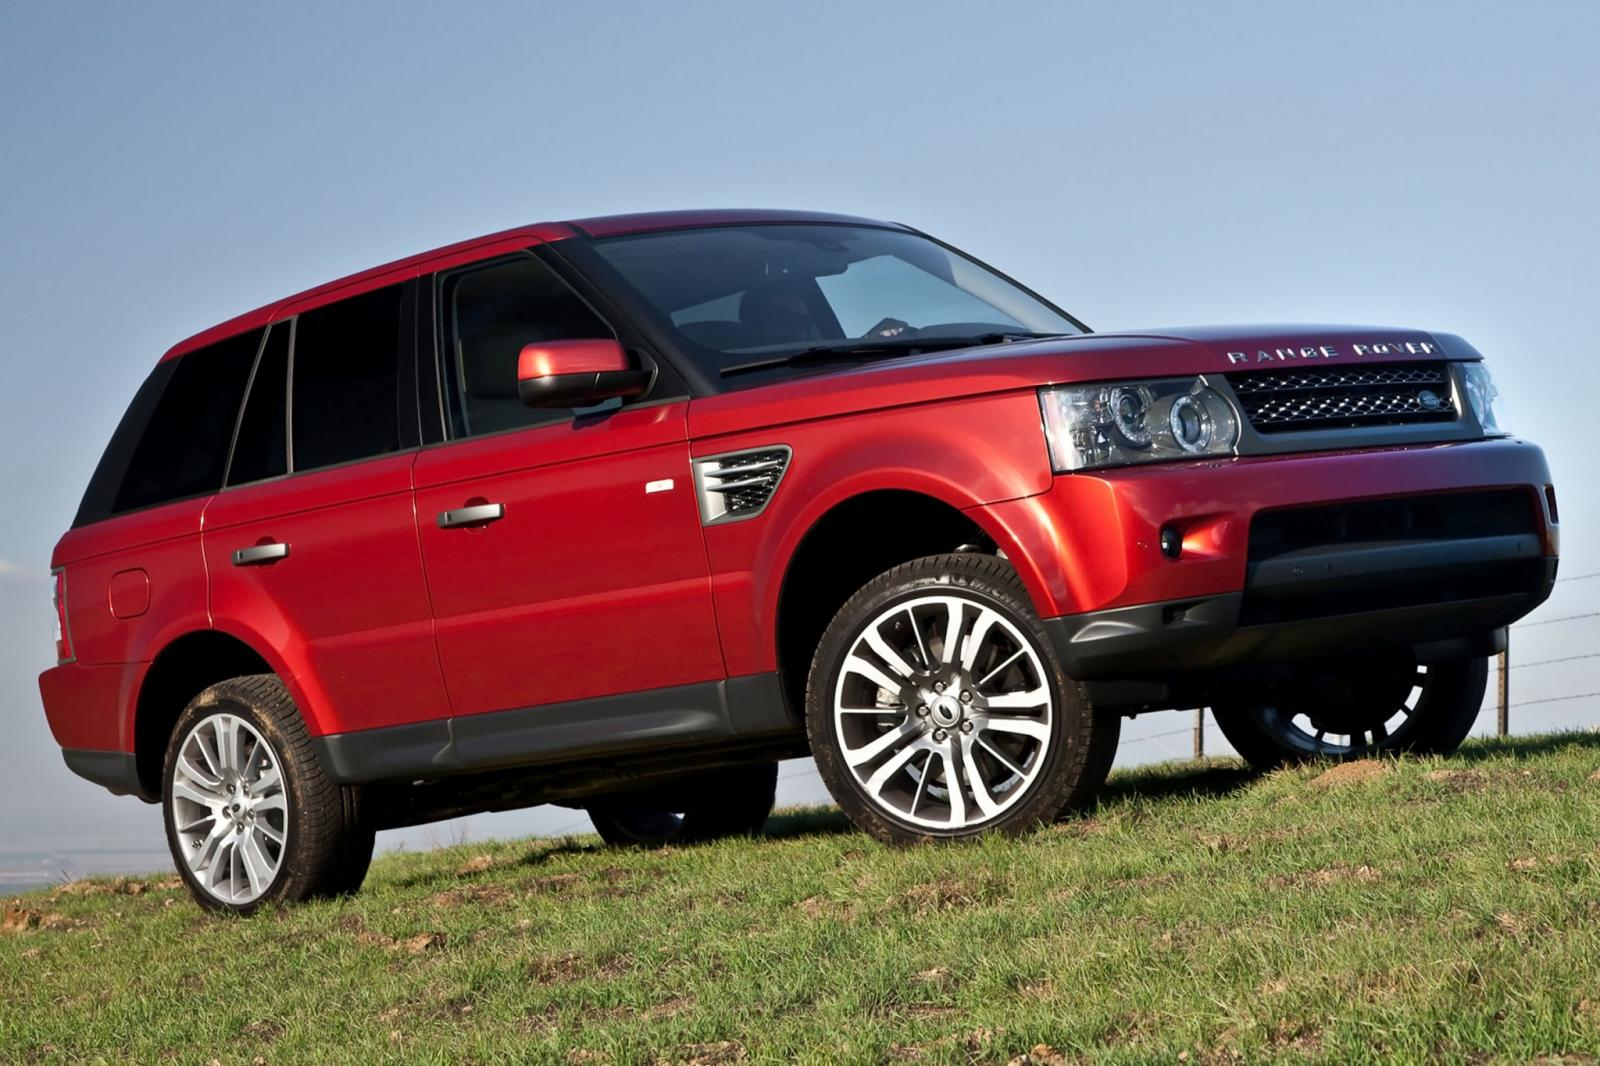 2013 land rover range rover sport information and photos zombiedrive. Black Bedroom Furniture Sets. Home Design Ideas